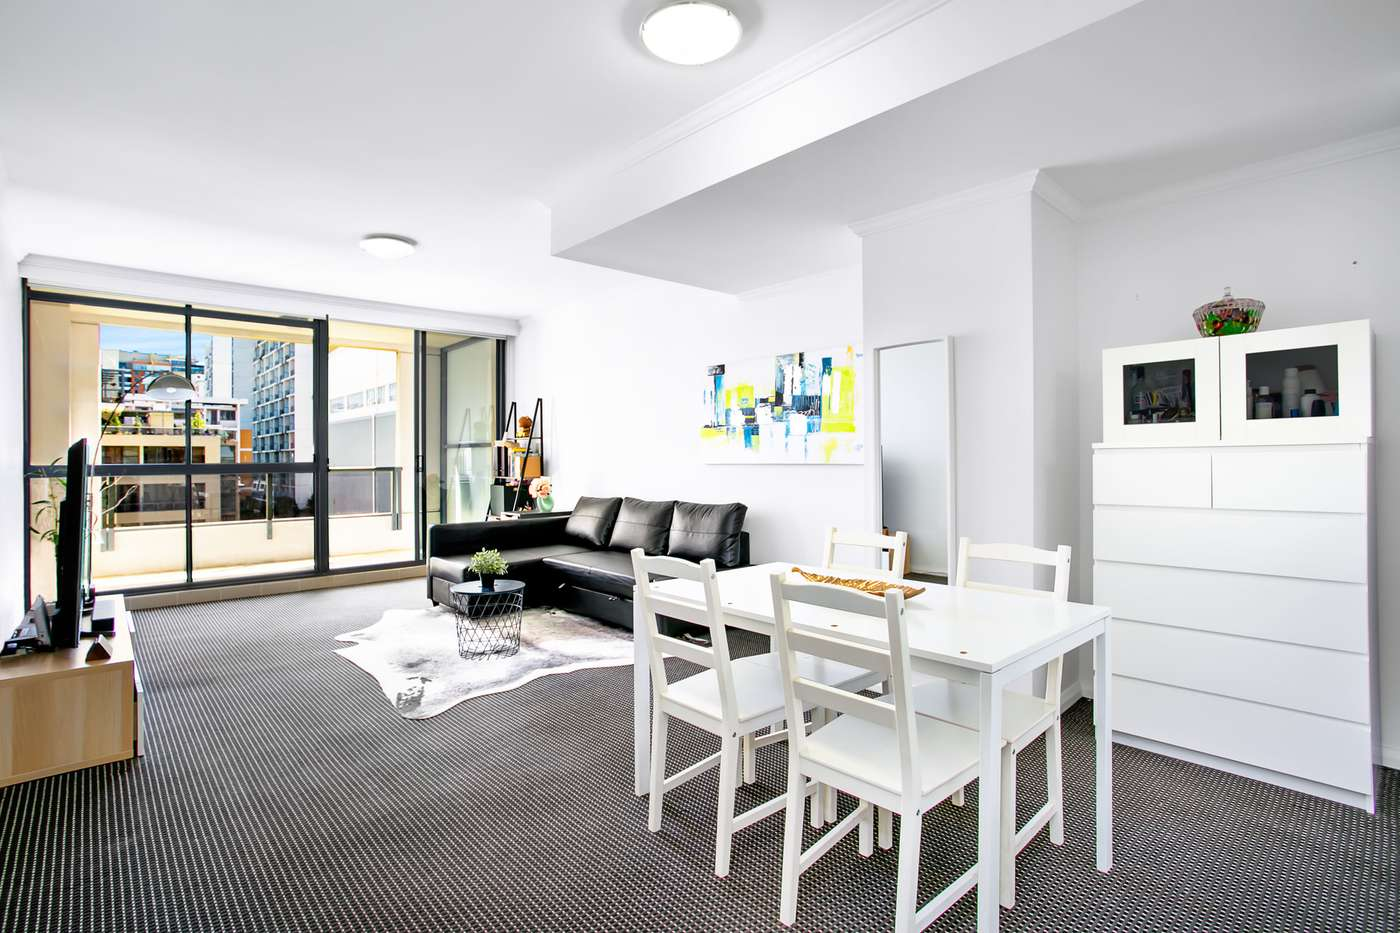 Main view of Homely apartment listing, 136/10 Lachlan Street, Waterloo, NSW 2017